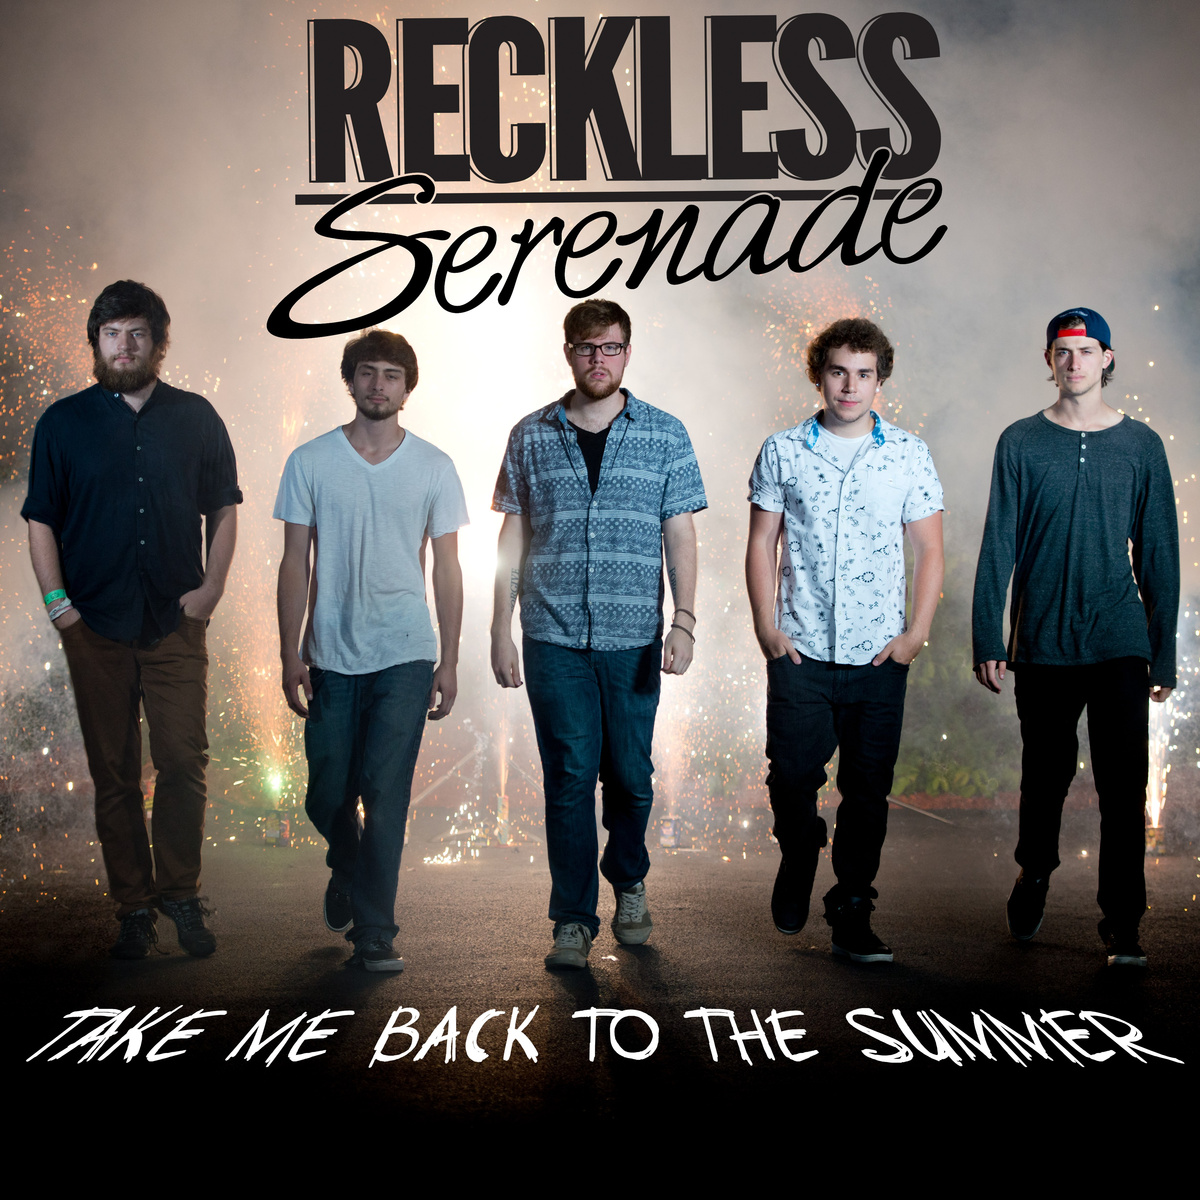 Tastes Like Rock - Reckless Serenade - Back To The Summer Review